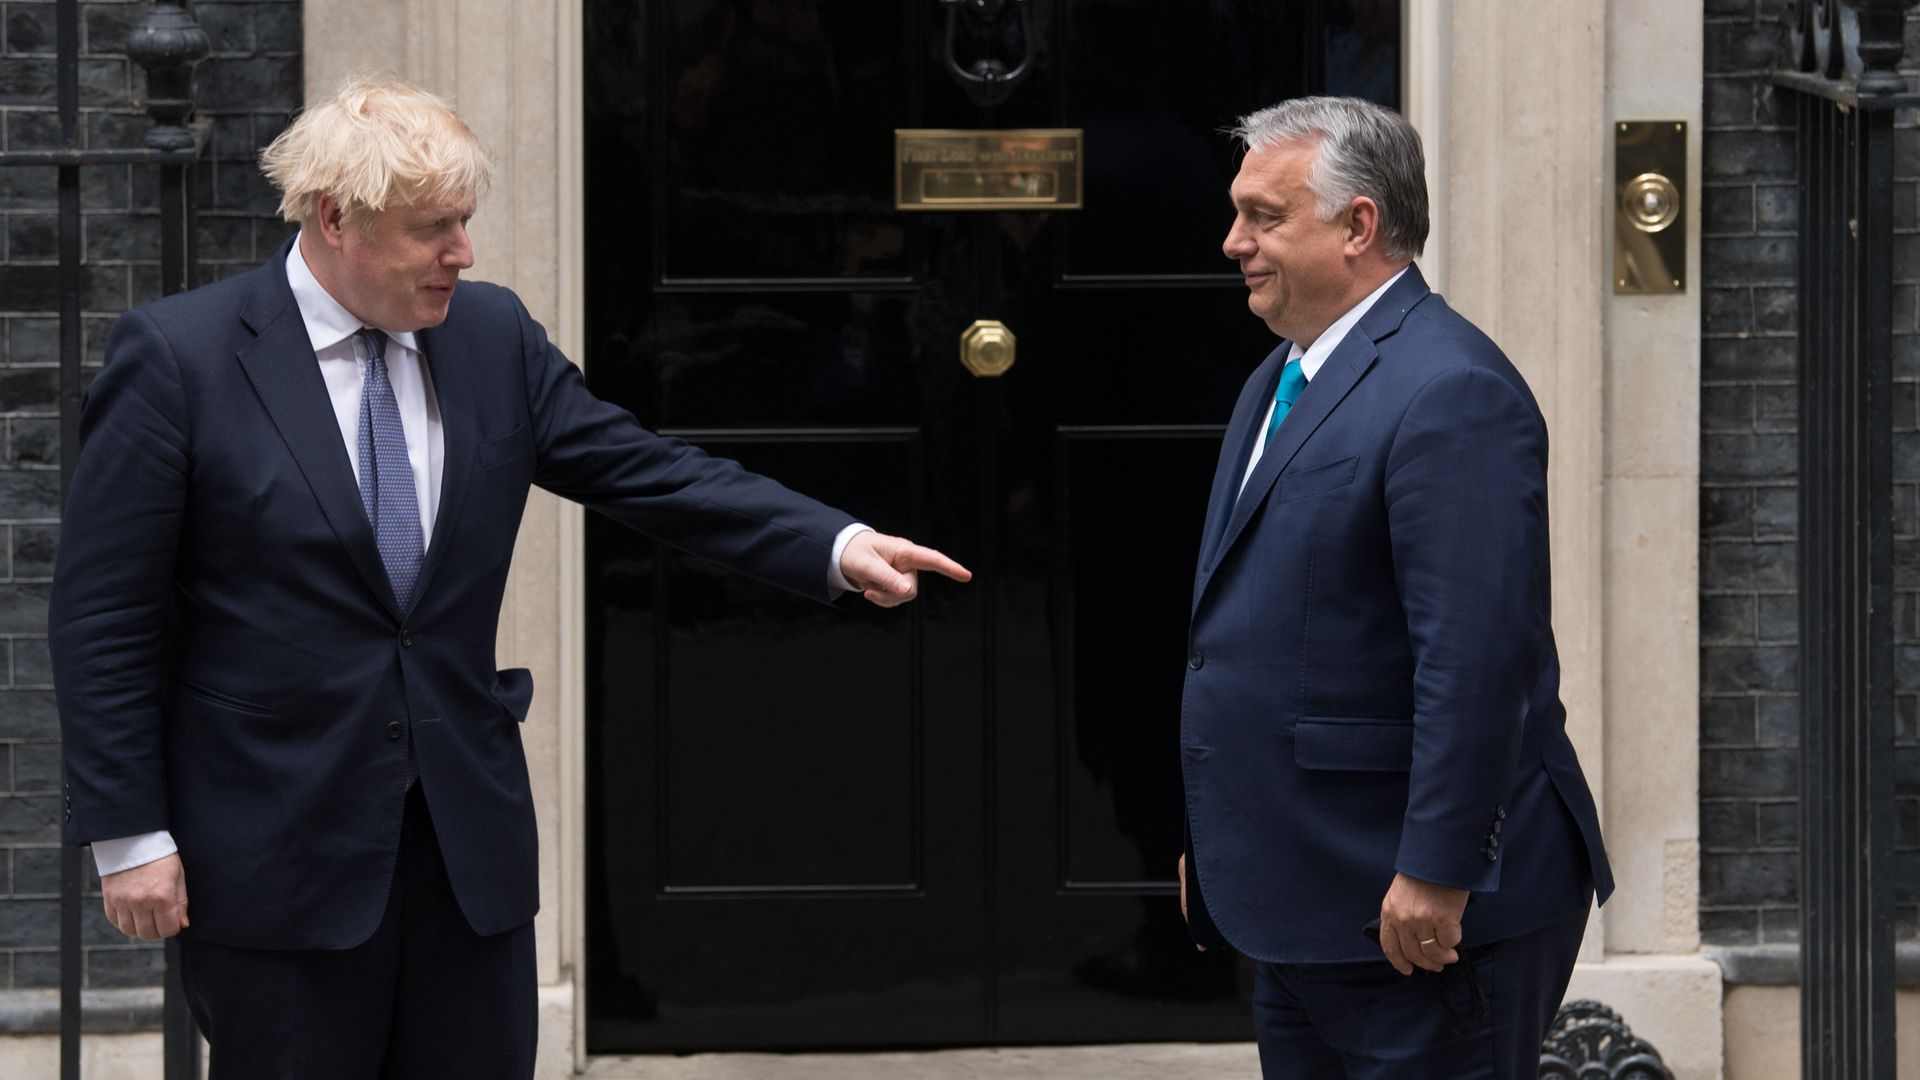 Prime Minister Boris Johnson welcomes the Prime Minister of Hungary, Viktor Orban, into 10 Downing Street - Credit: PA